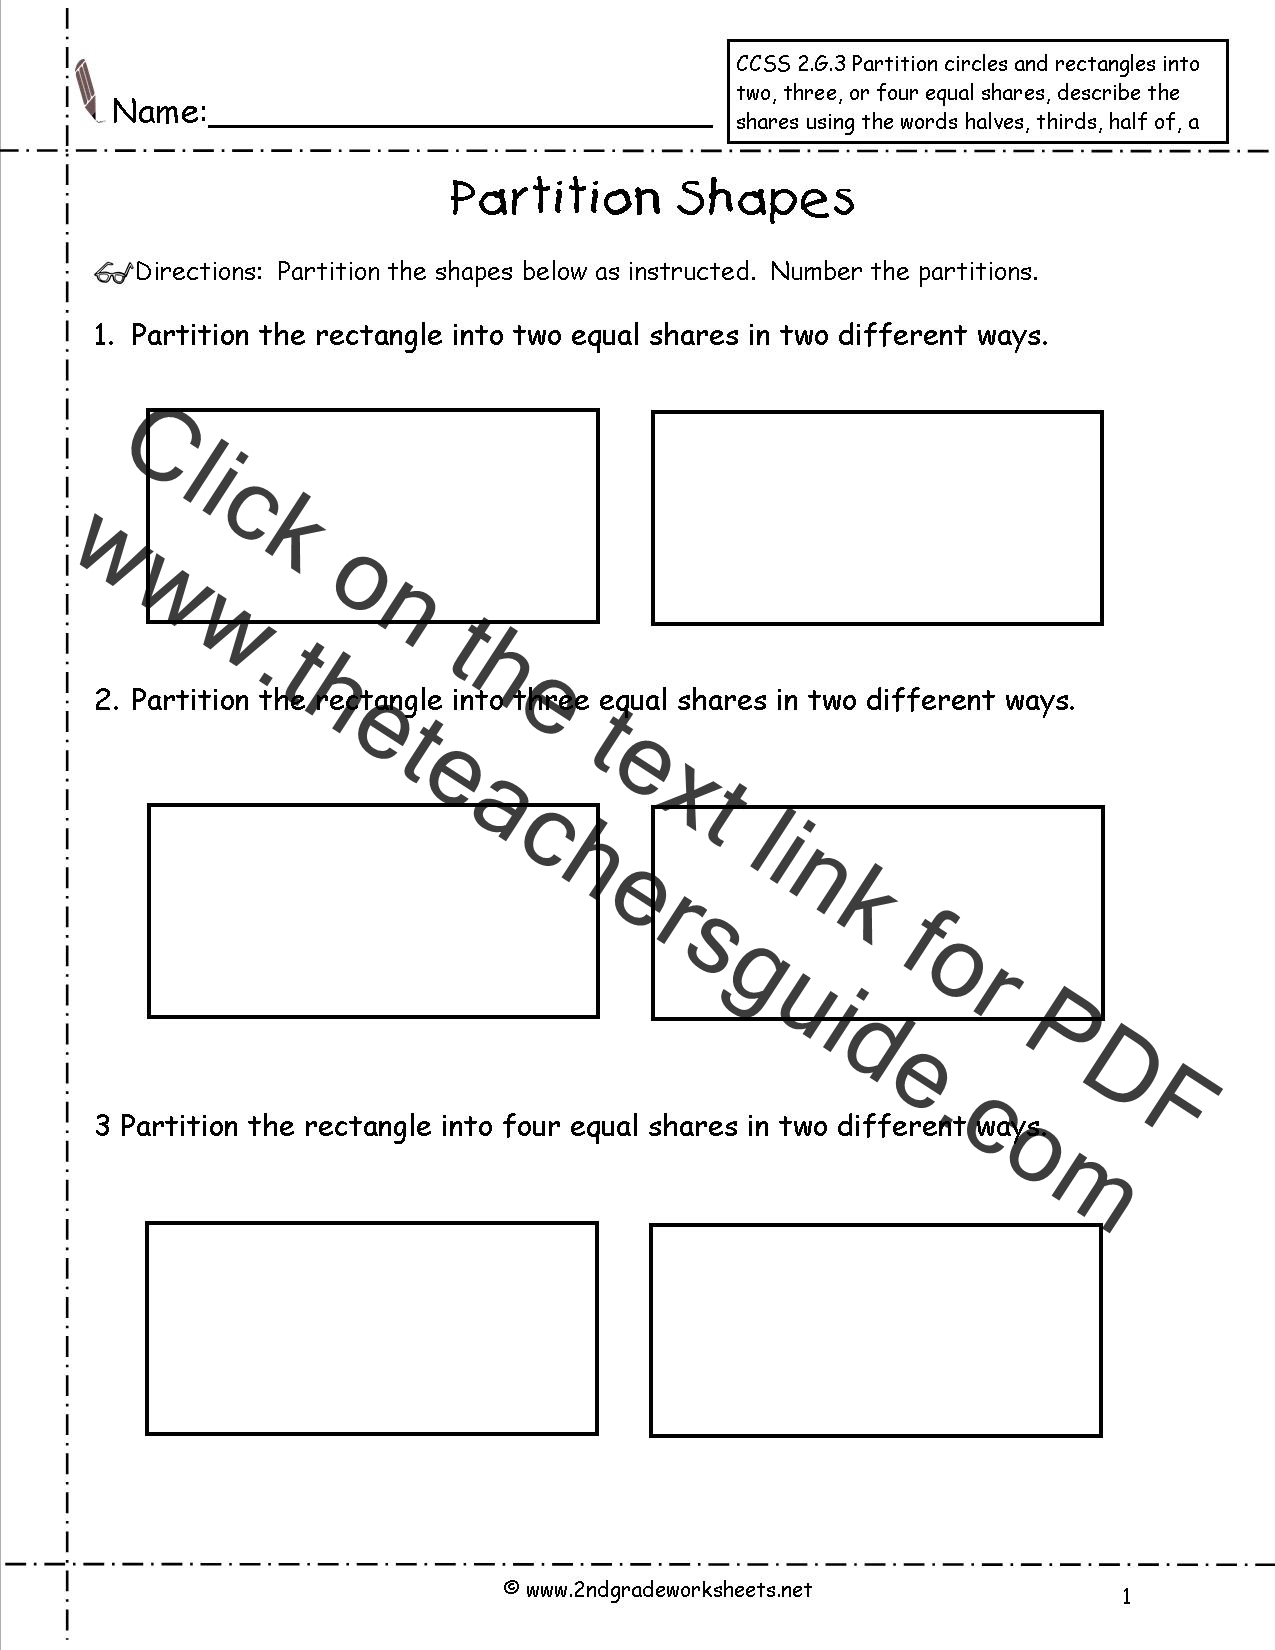 Ccss 2 G 3 Worksheets Partition Shapes